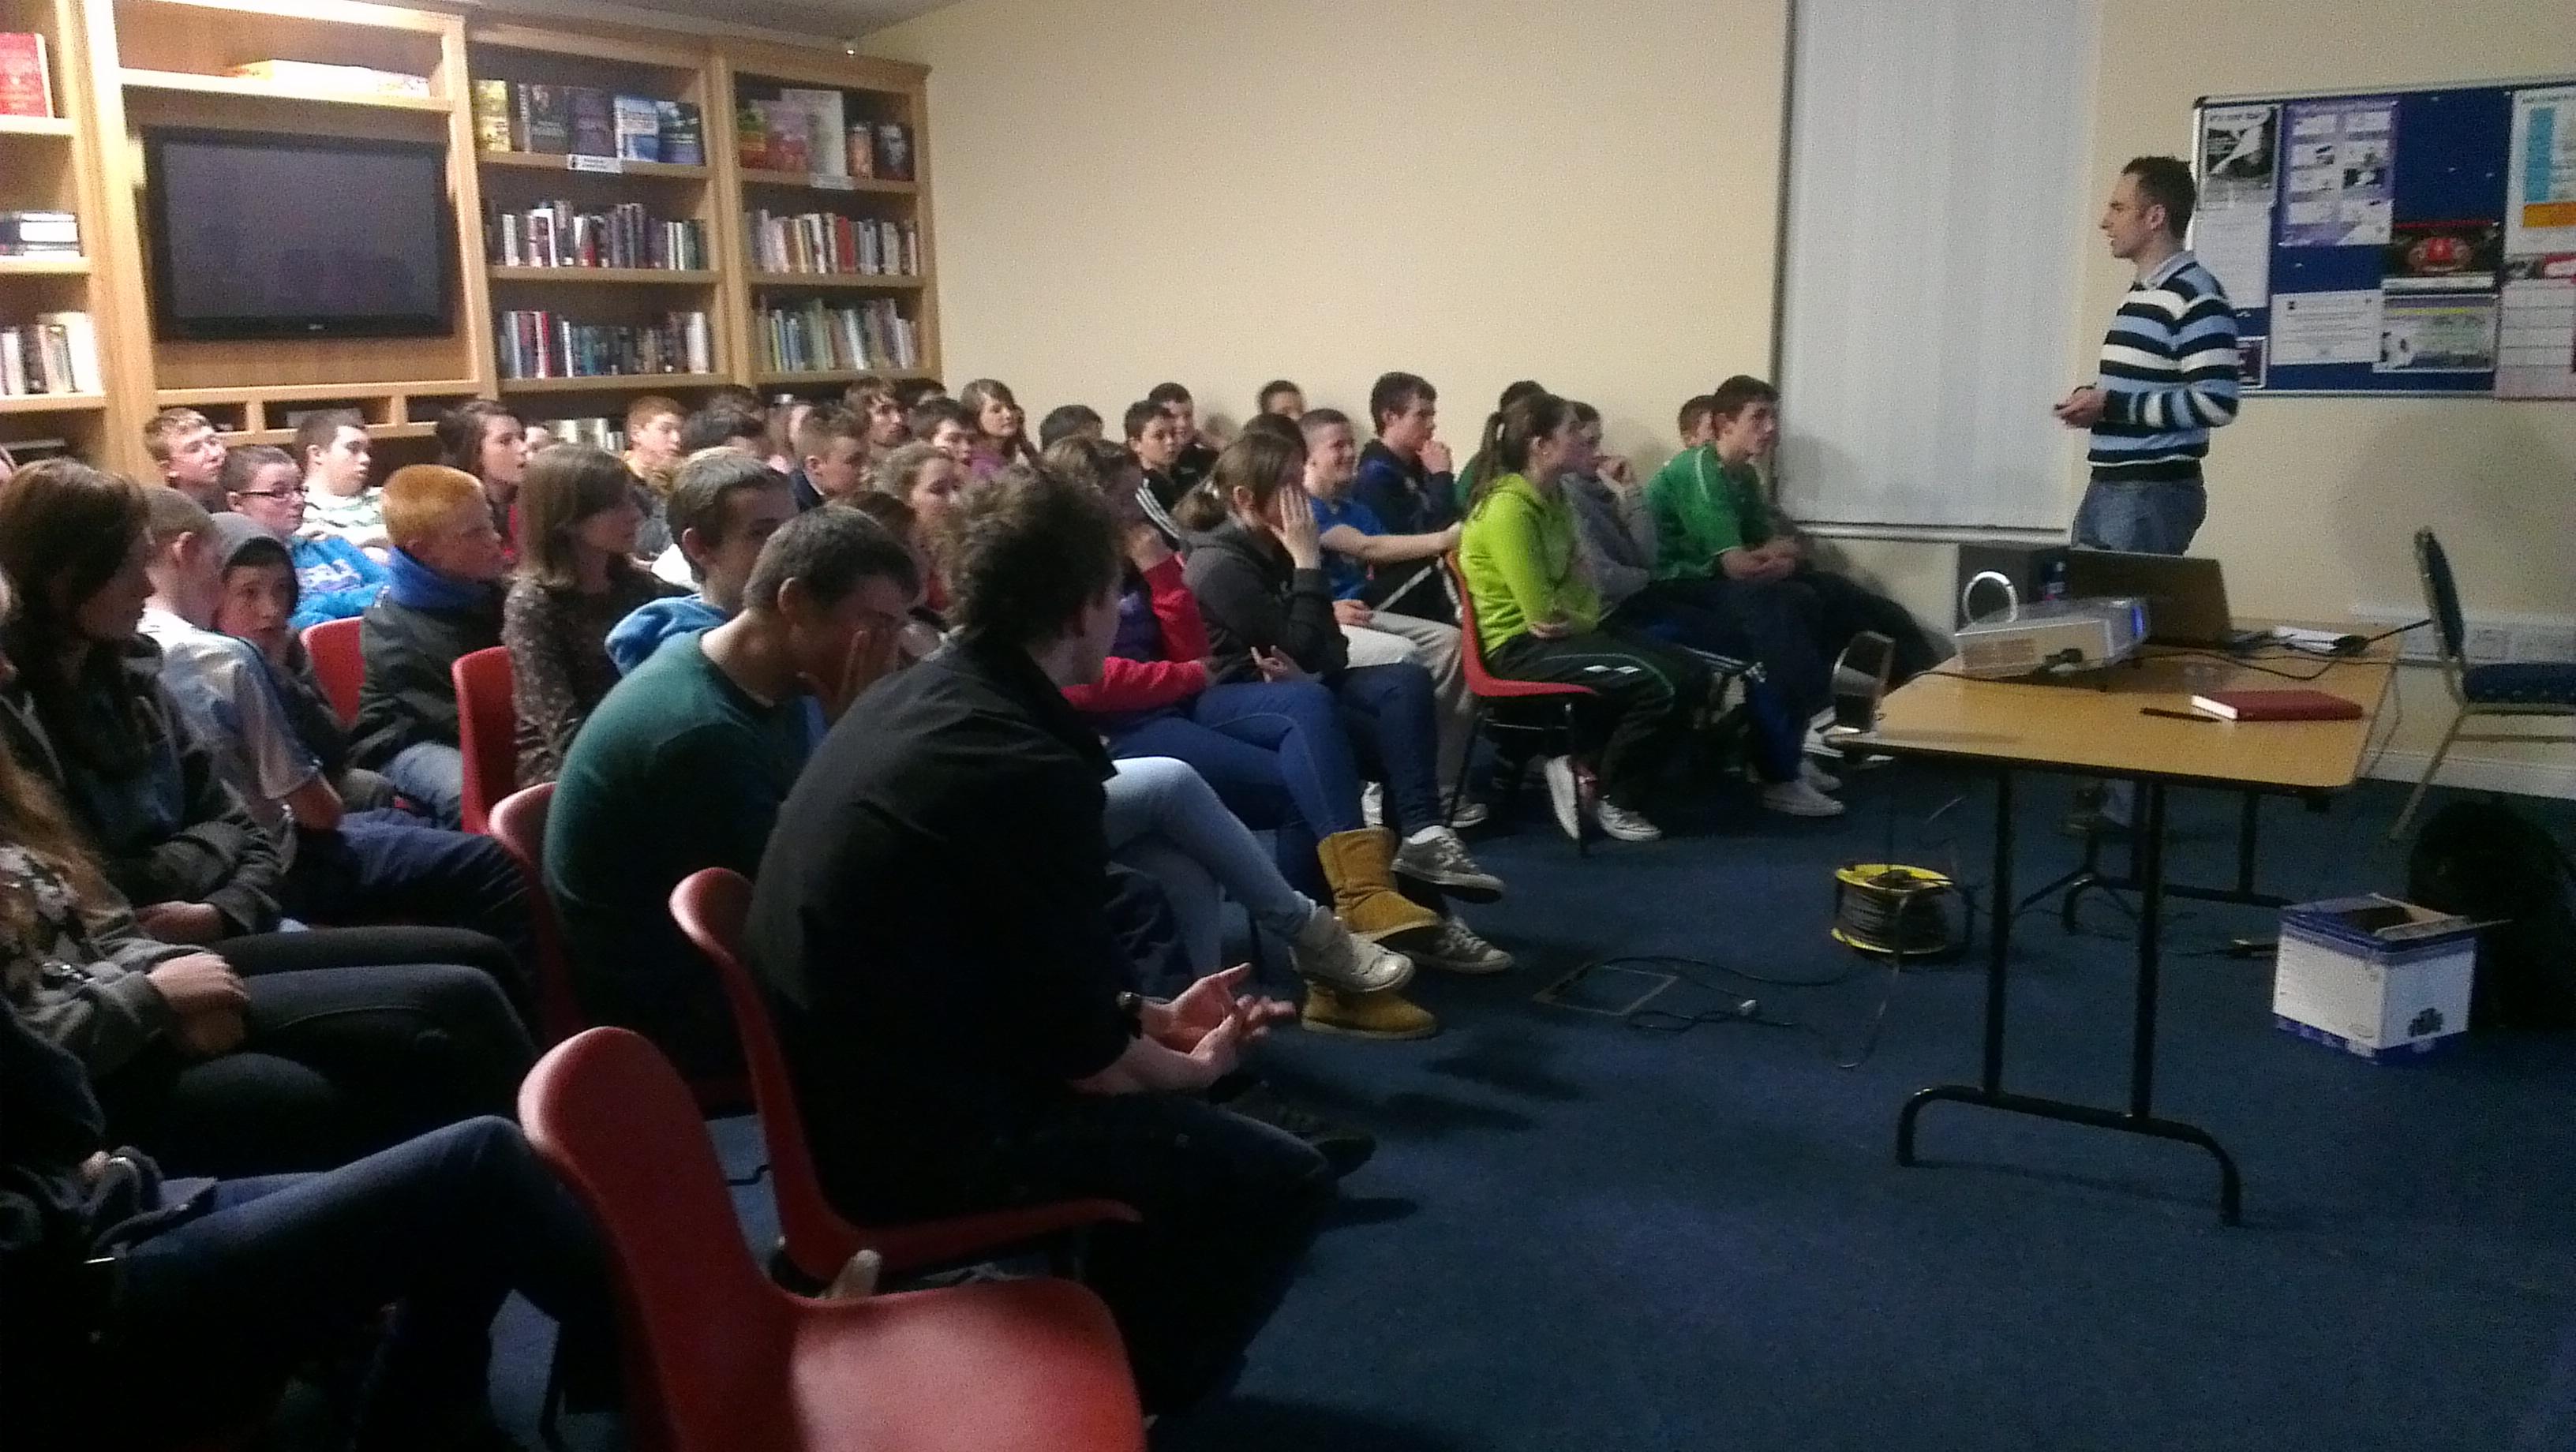 Niall Mulrine talks about Cyber-bullying tips in Magheraroarty